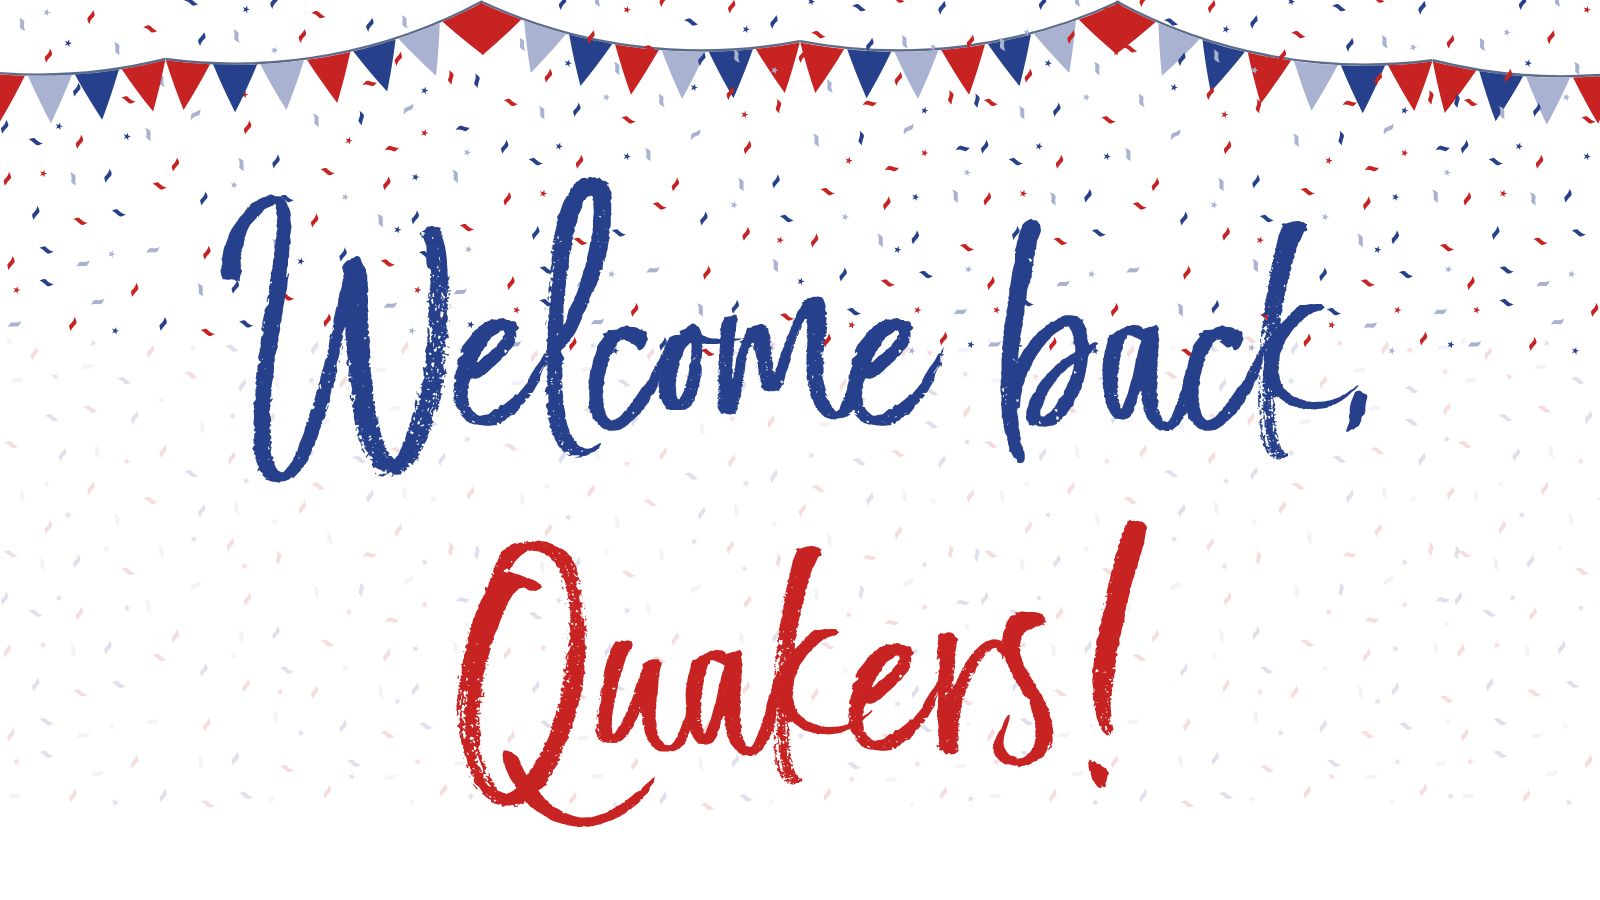 Welcome back Quakers